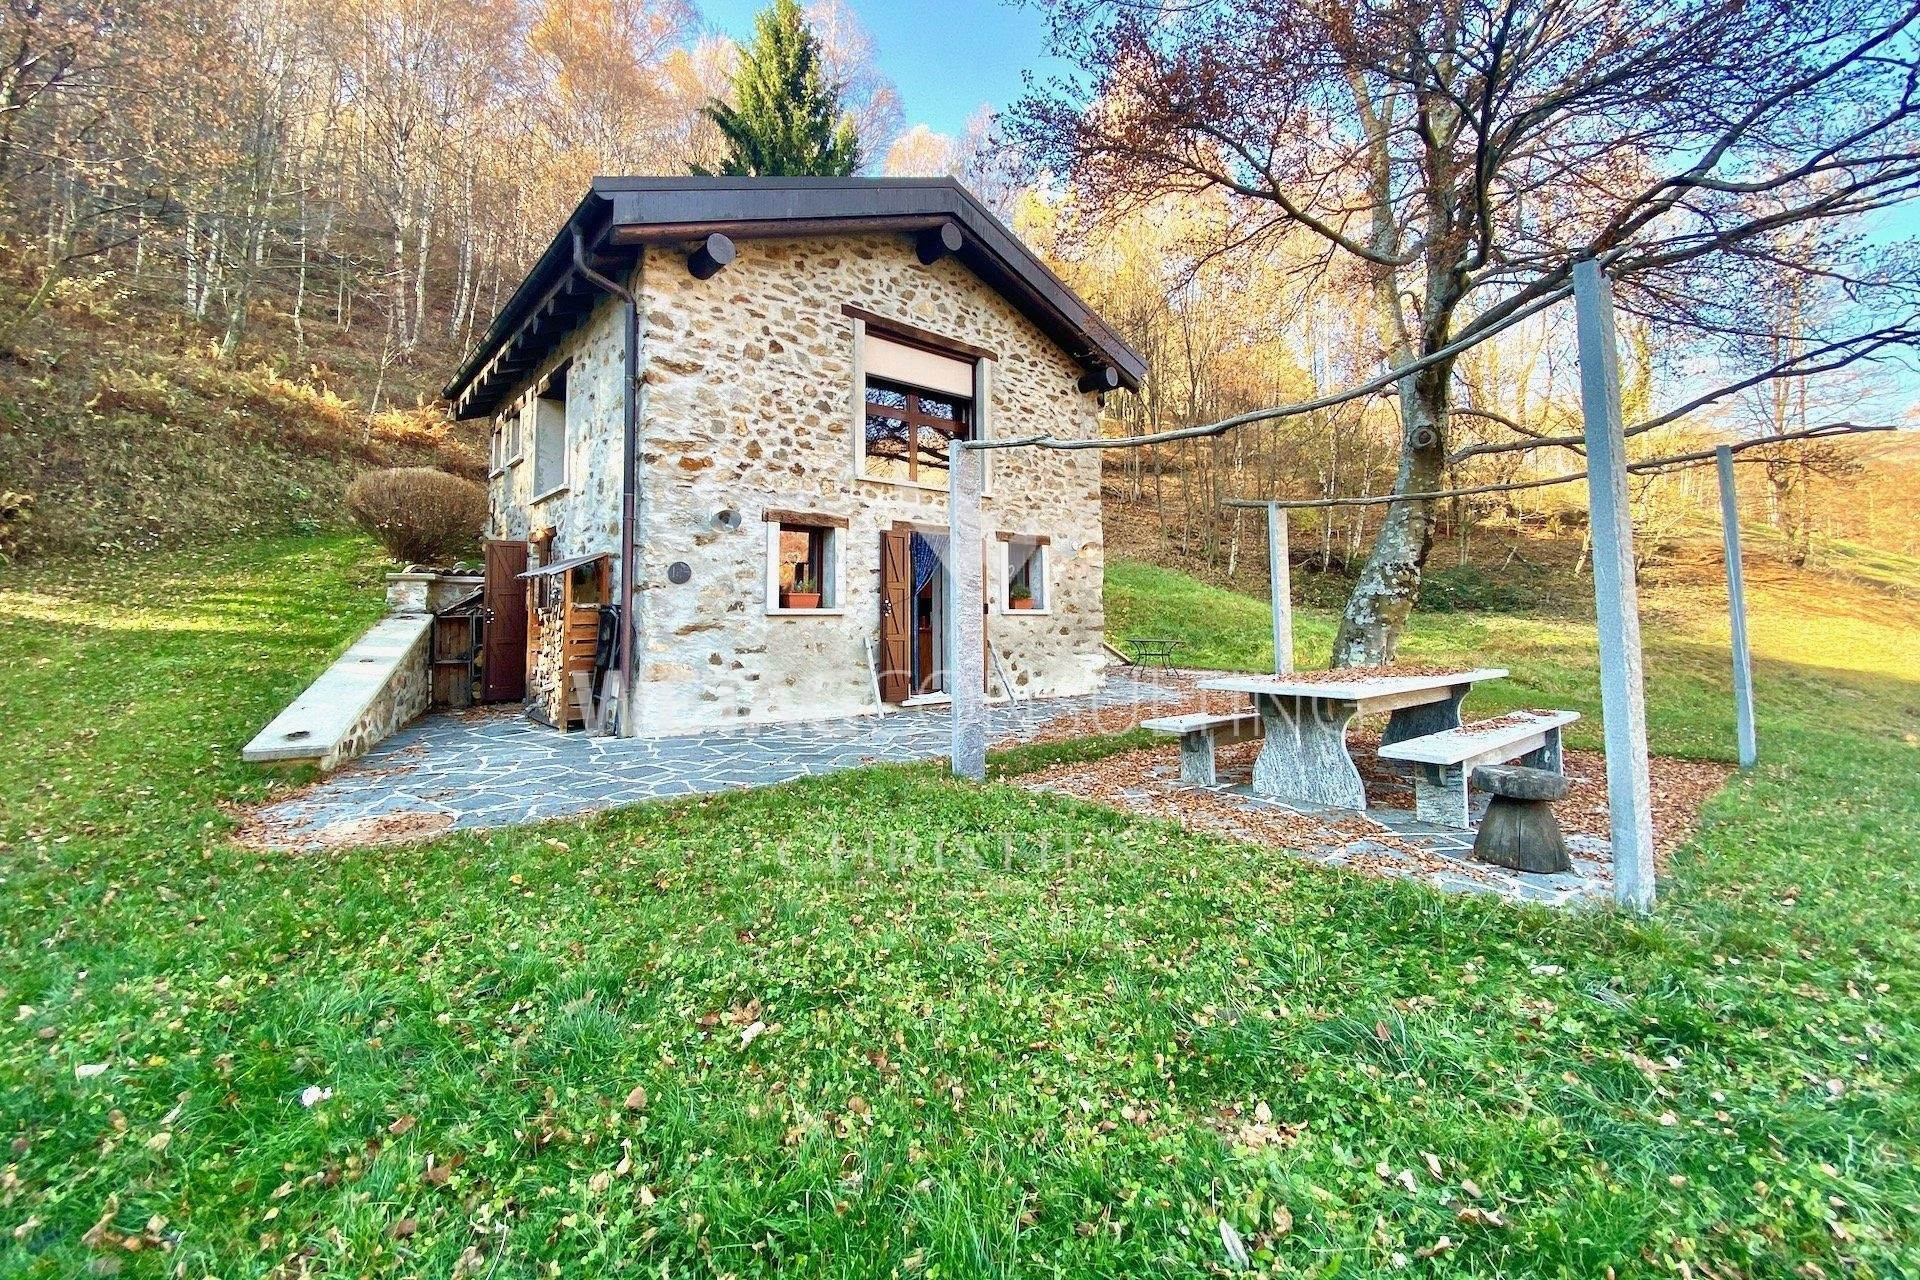 Villa / Maison de ville pour l à vendre à Completely renovated rustico in the middle of the green in Lugano-Cimadera for sale Cimadera, Tessin,6959 Suisse